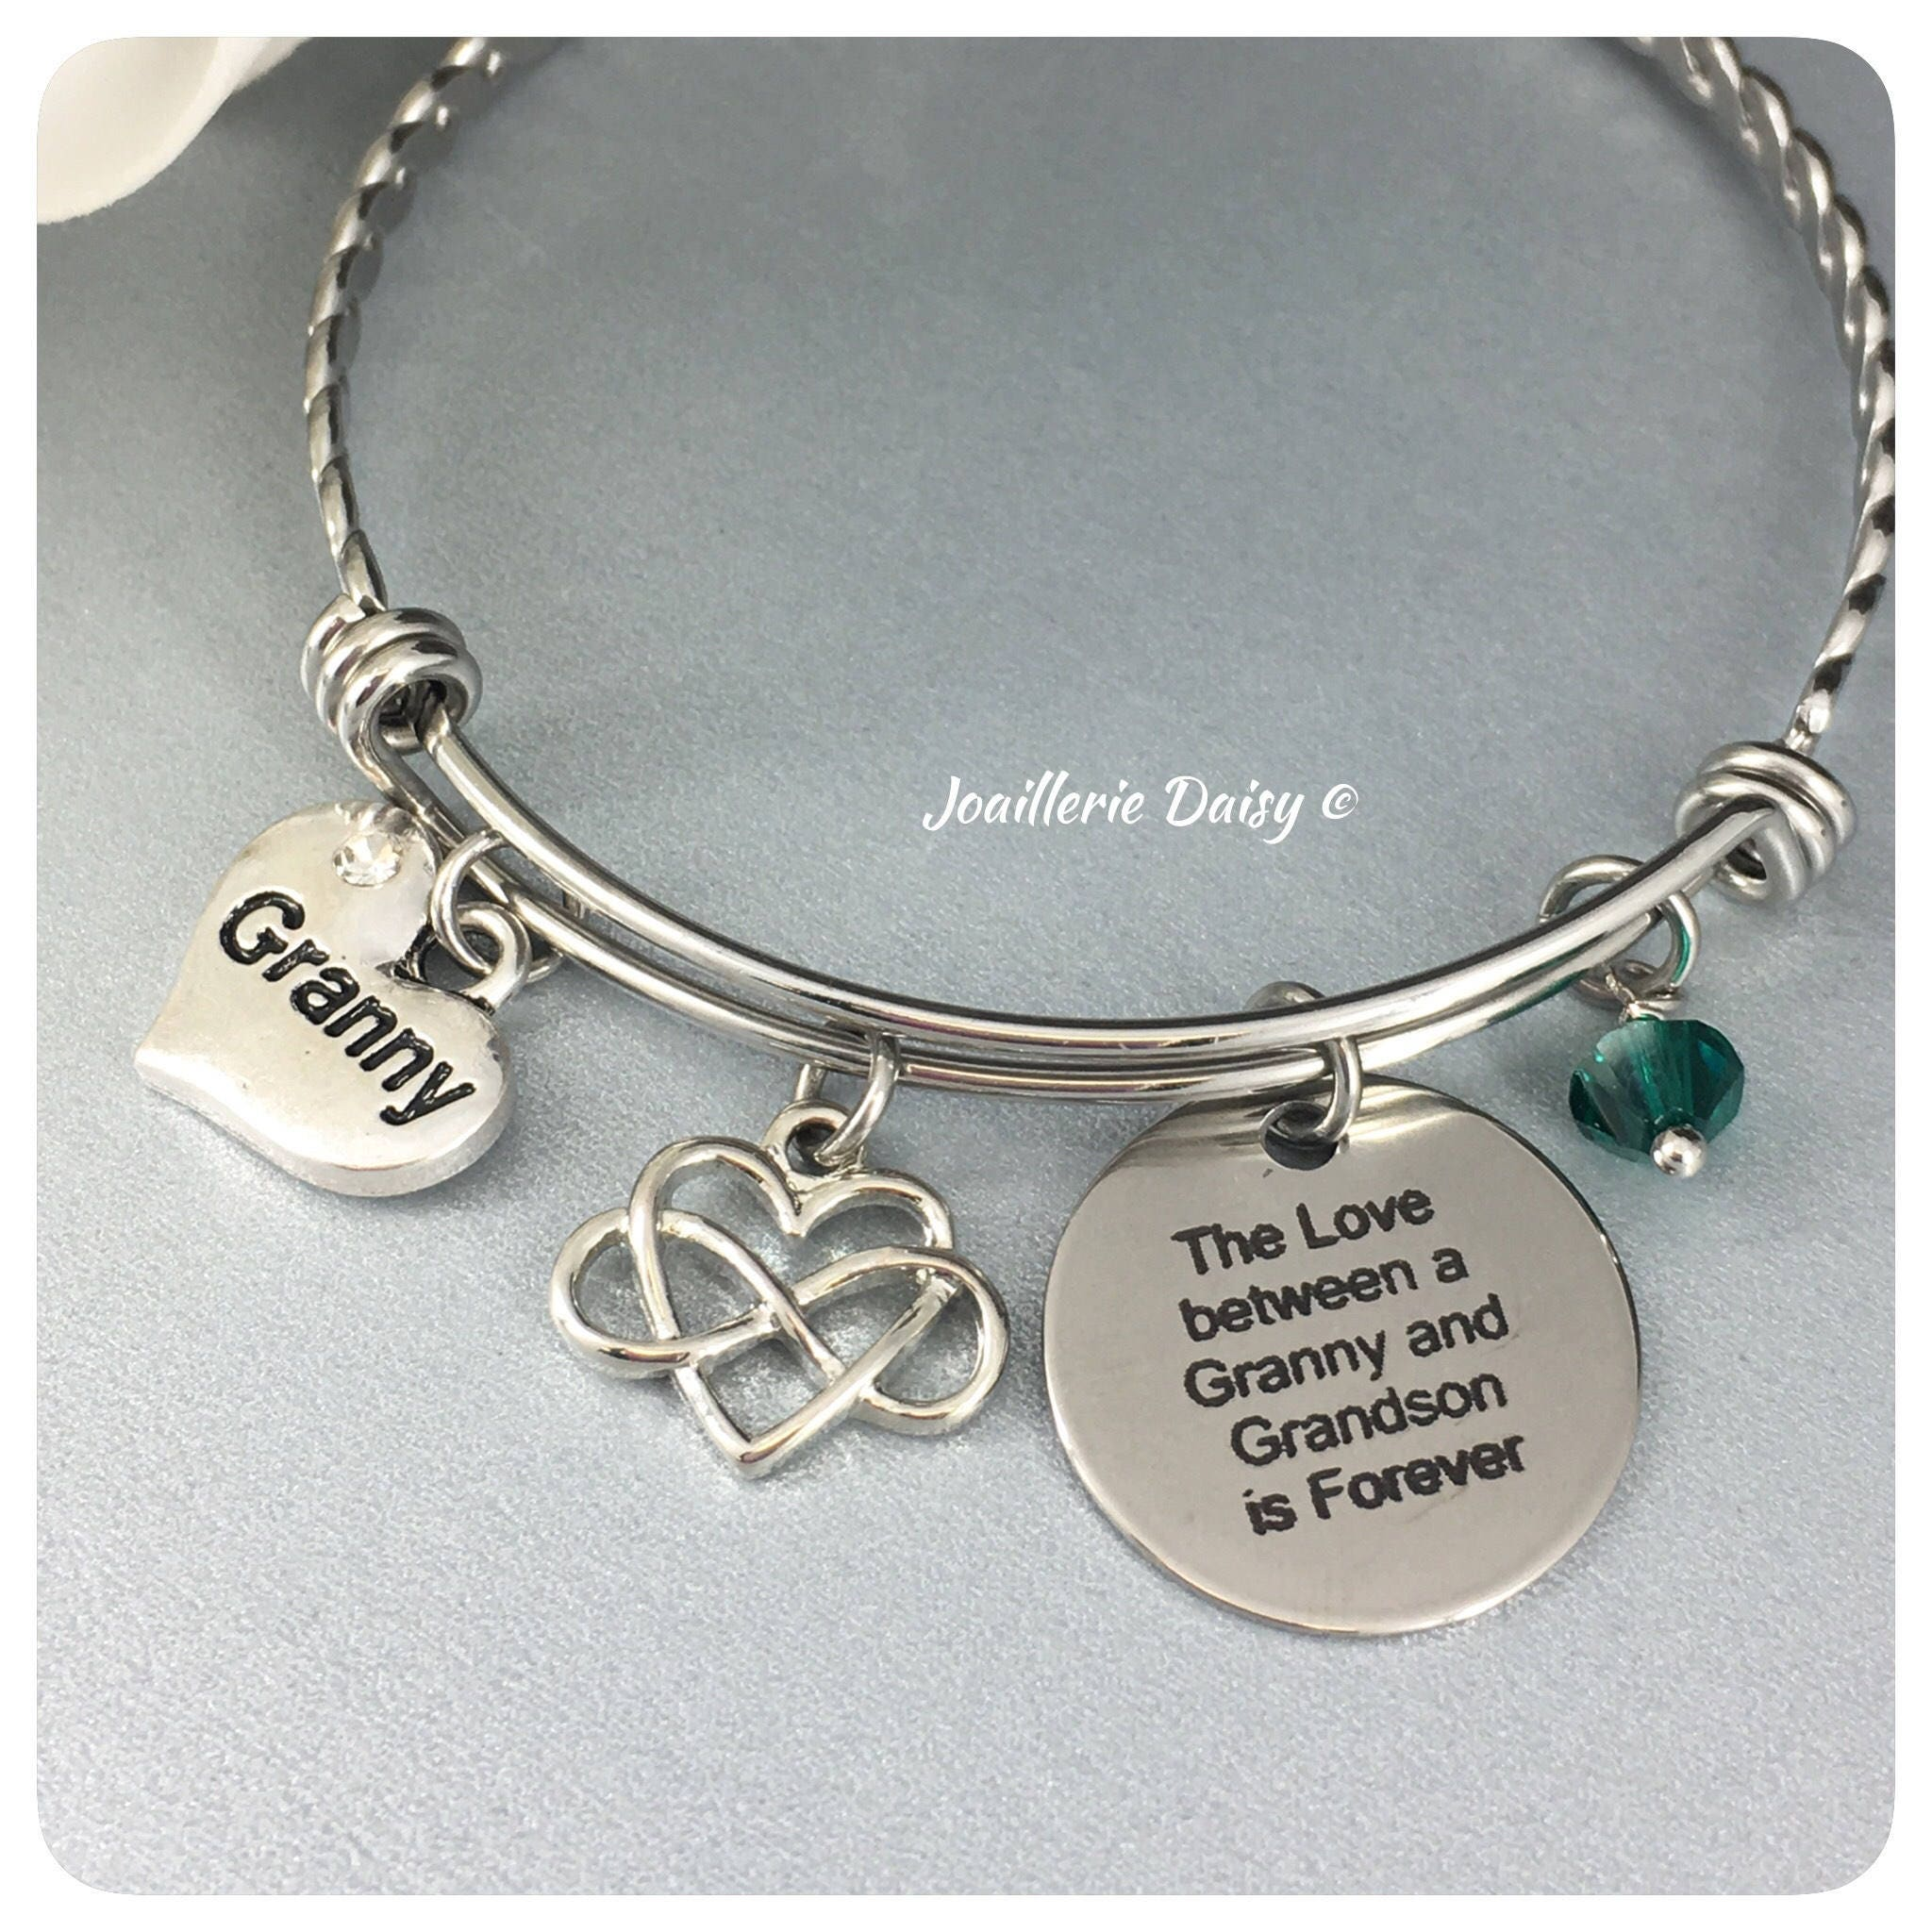 personalized hand mother listing jewelry gift baby stamped s fullxfull grandchild for custom day grandmother ship mamaw bangle free il bracelet